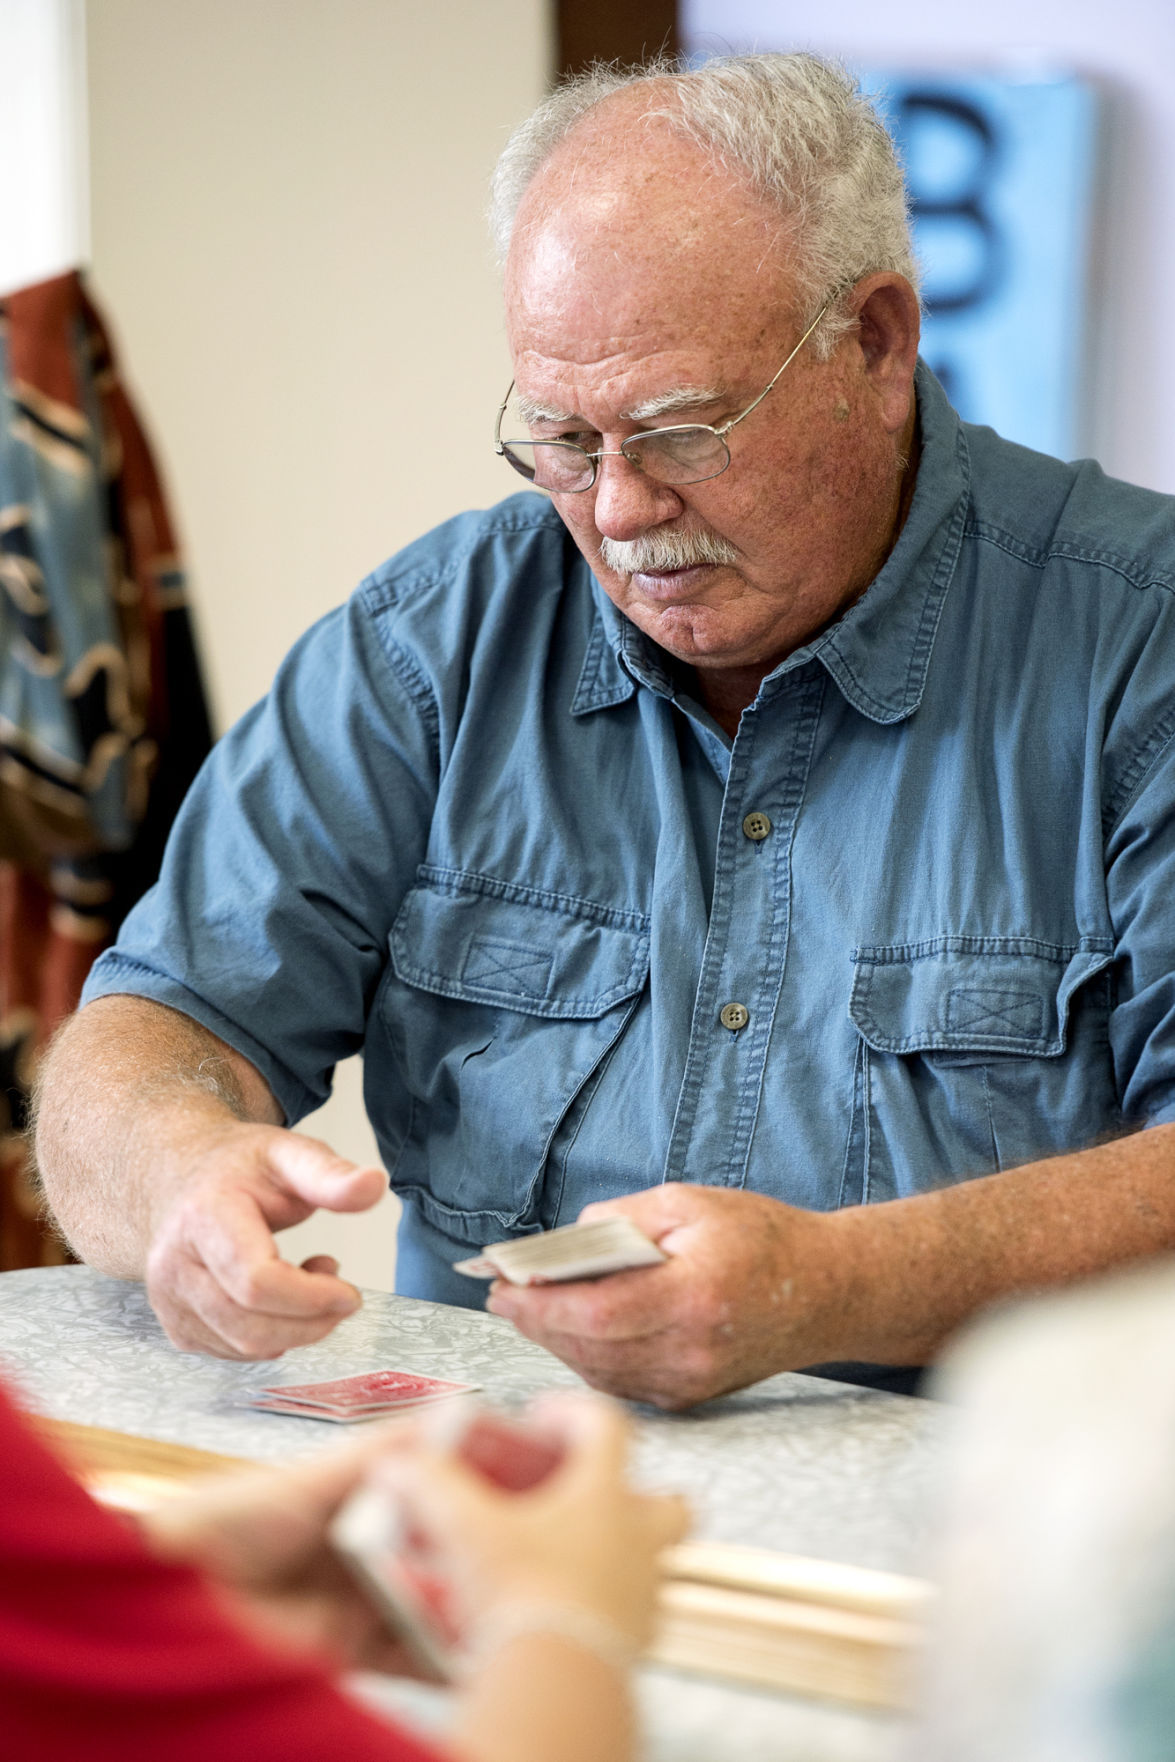 Cribbage league co-founder Krause finds friends wherever he goes